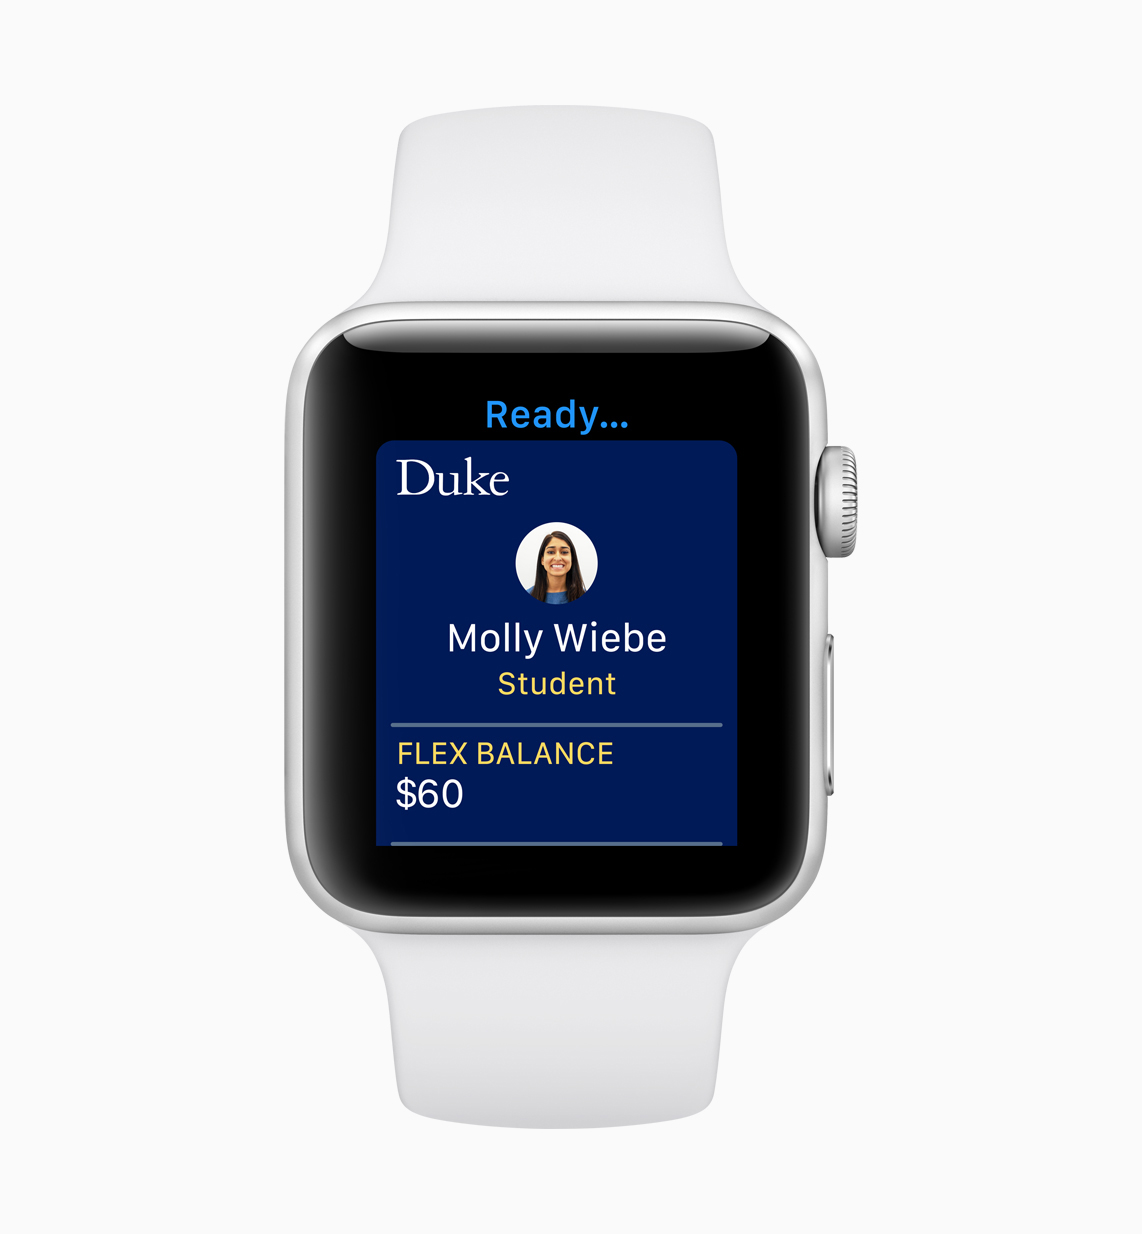 Apple-watchOS_5-Student-ID-screen-06042018.jpg